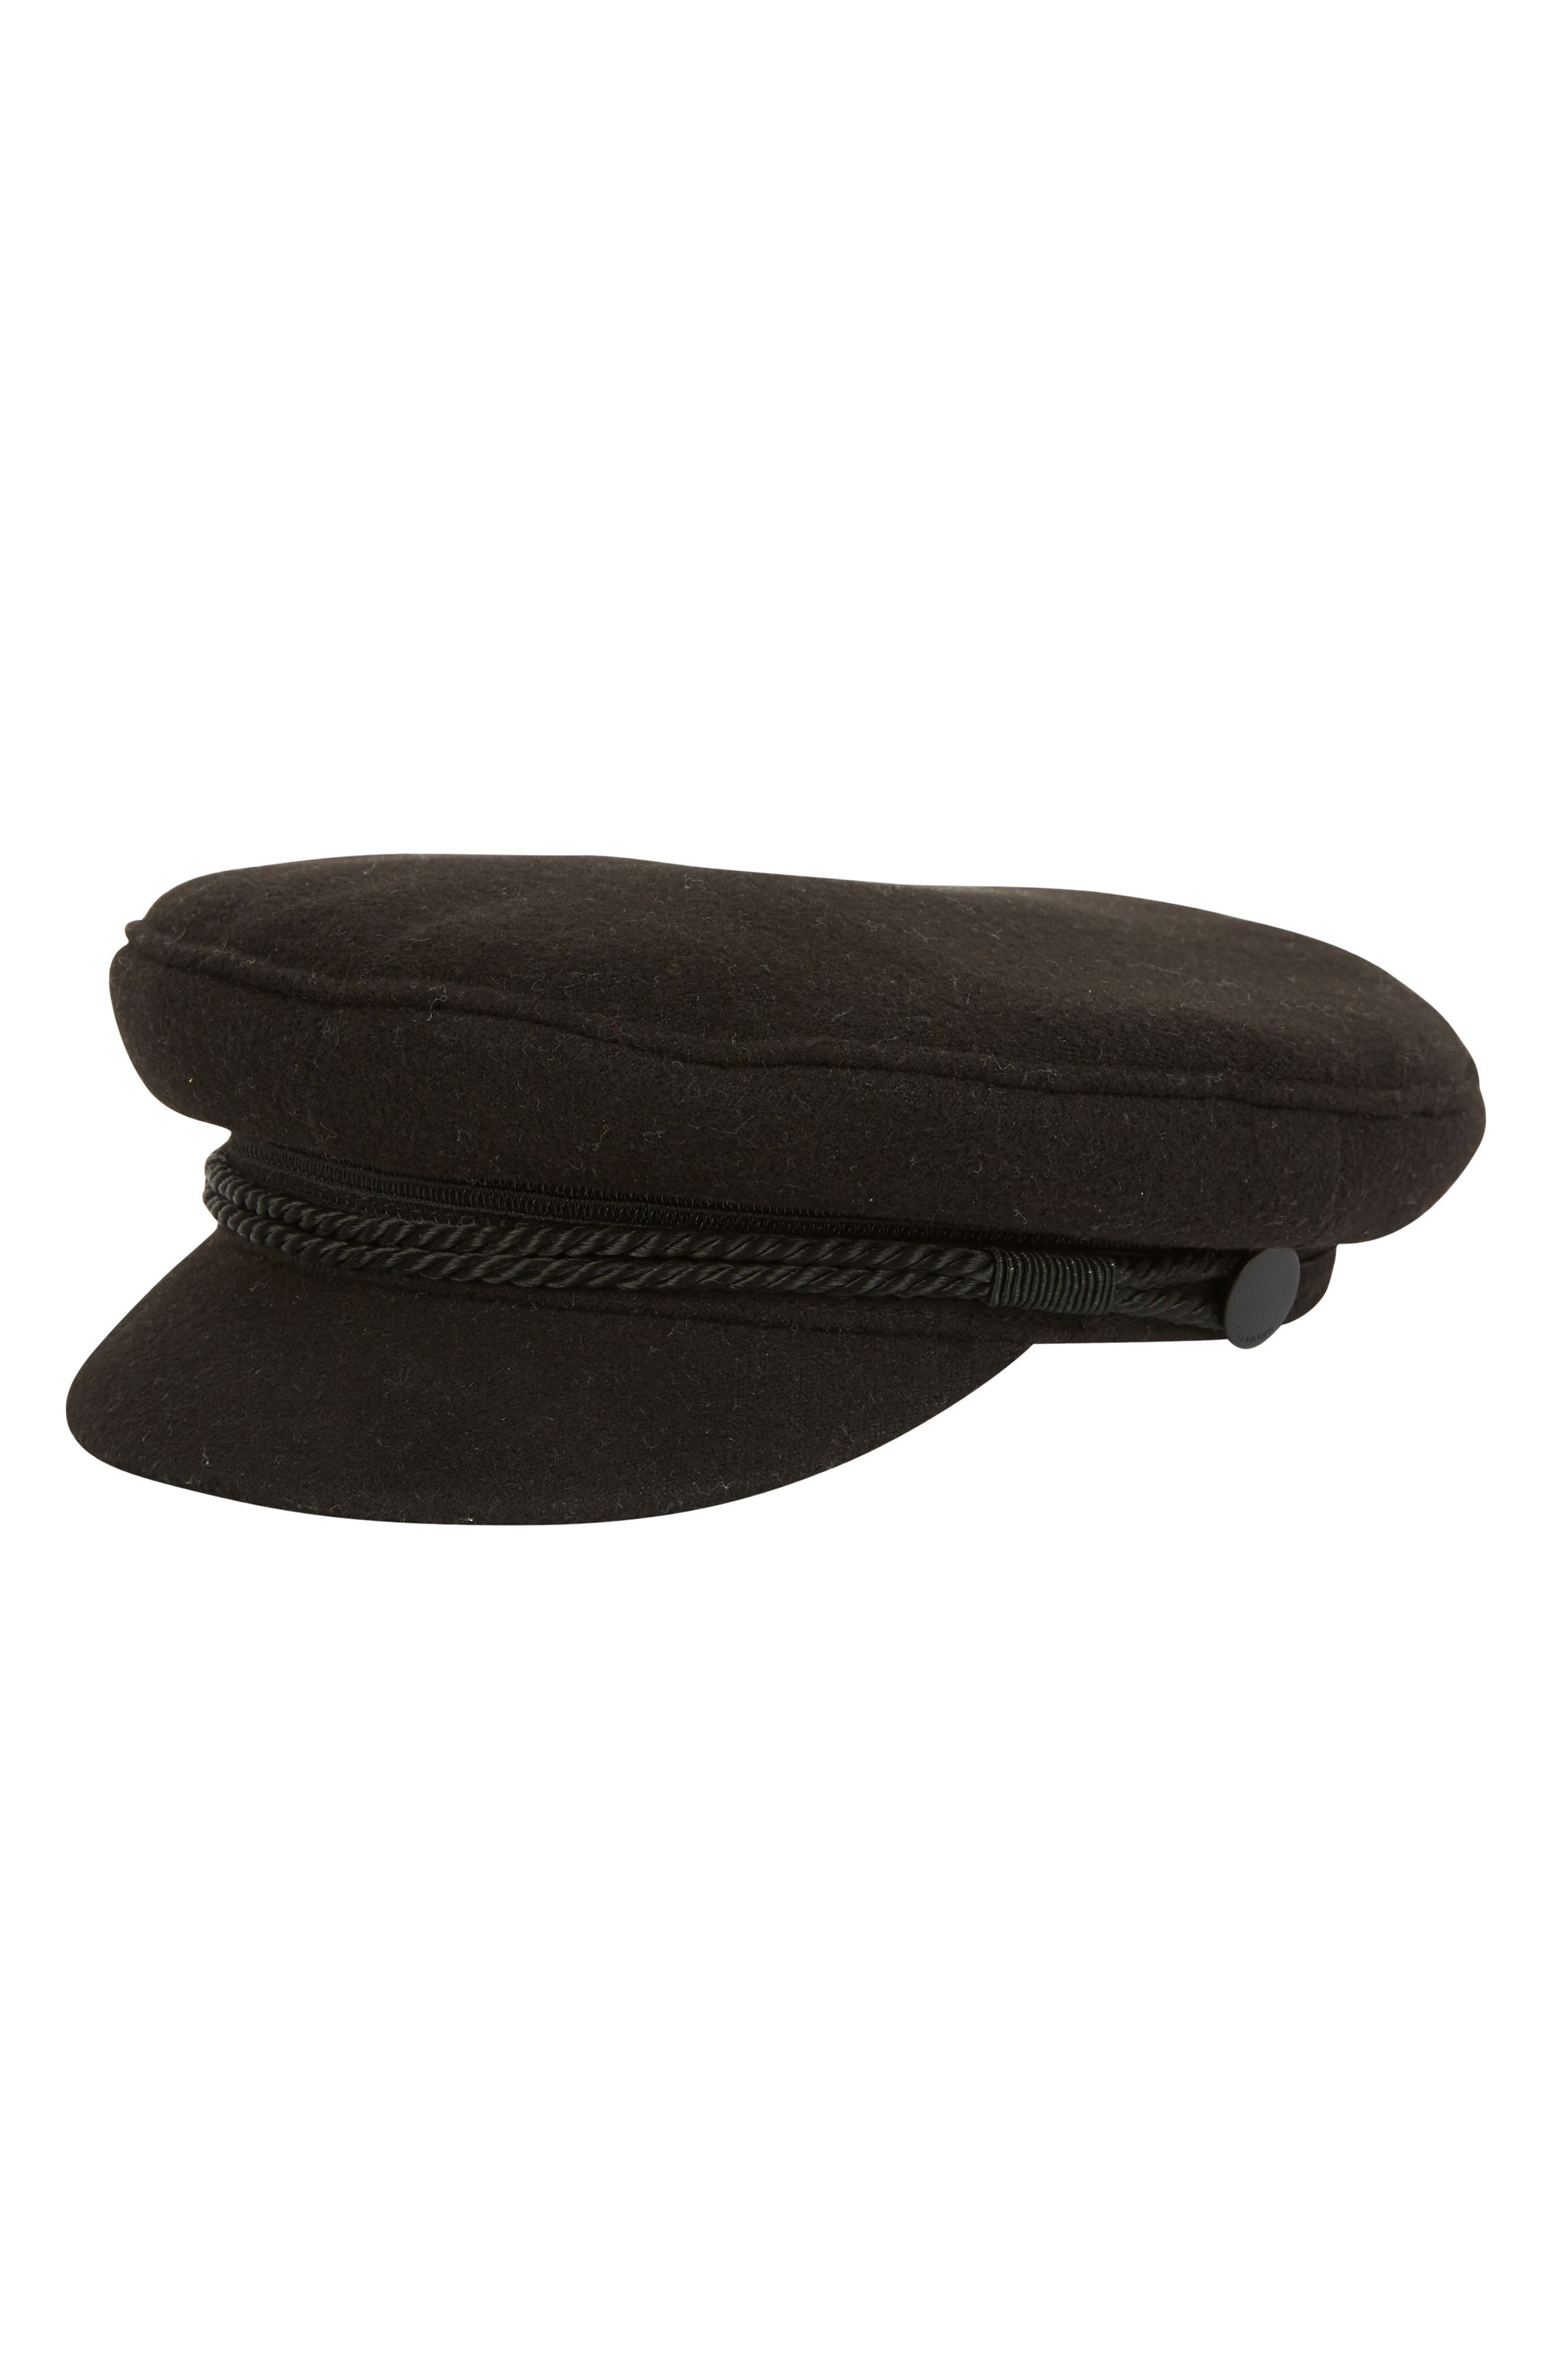 Jack Baker Boy Hat,                             Alternate thumbnail 2, color,                             Black